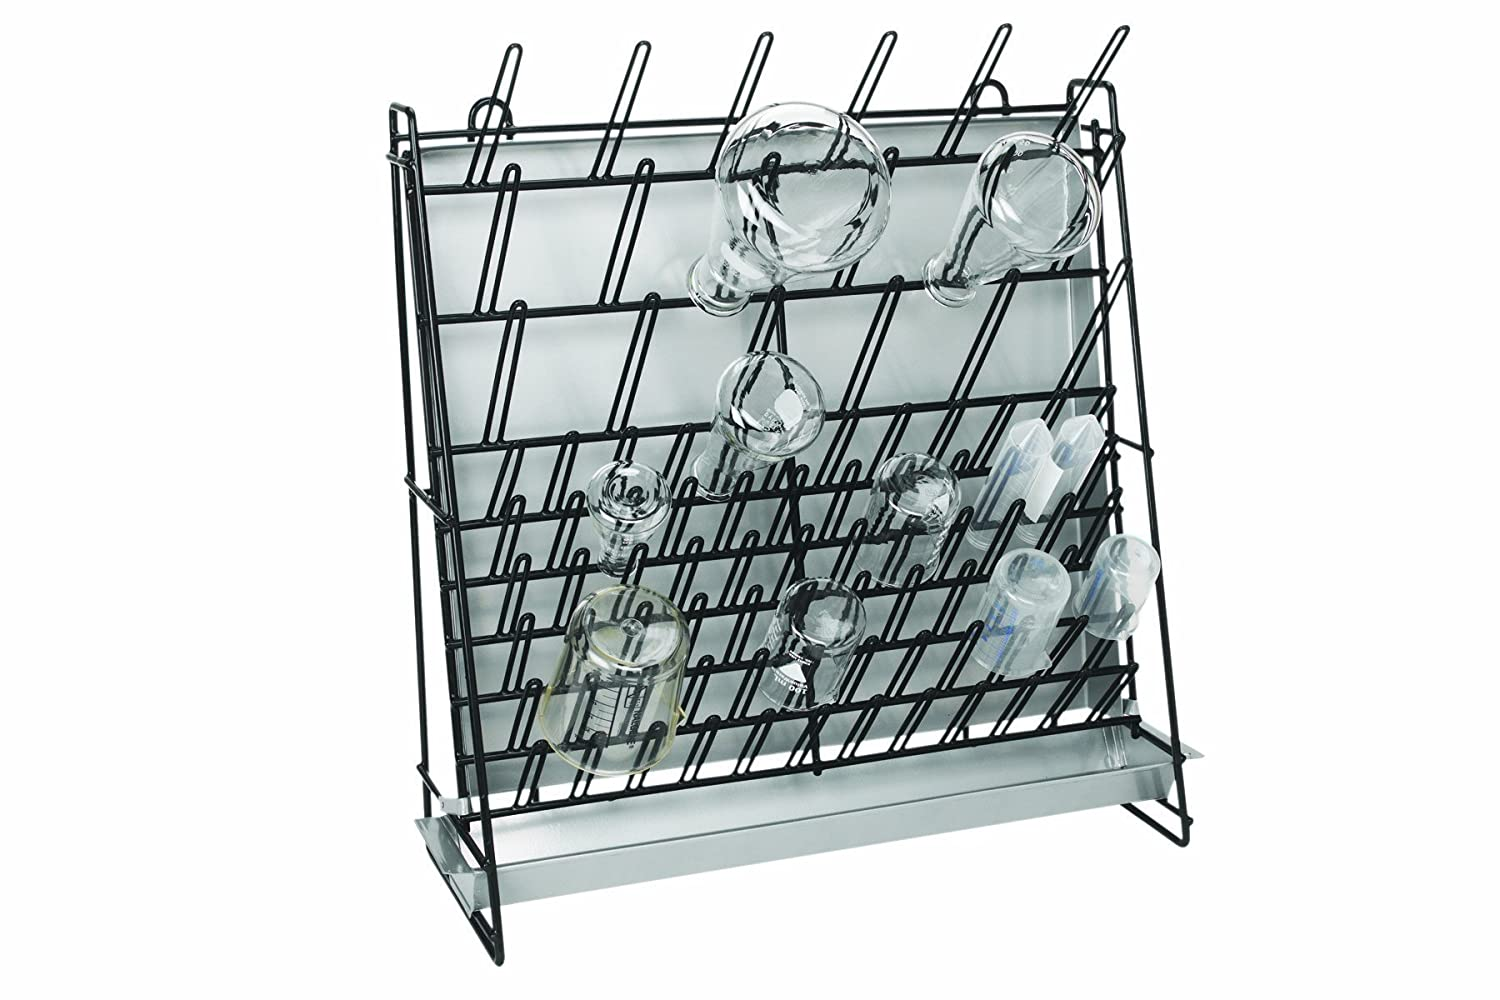 Heathrow Scientific - HEA23243A HS23243A Glassware Drying Rack, Vinyl-Coated Steel Wire Construction, Self-Standing or Wall-Mountable, 462 x 182 x 525mm (L x W x H)